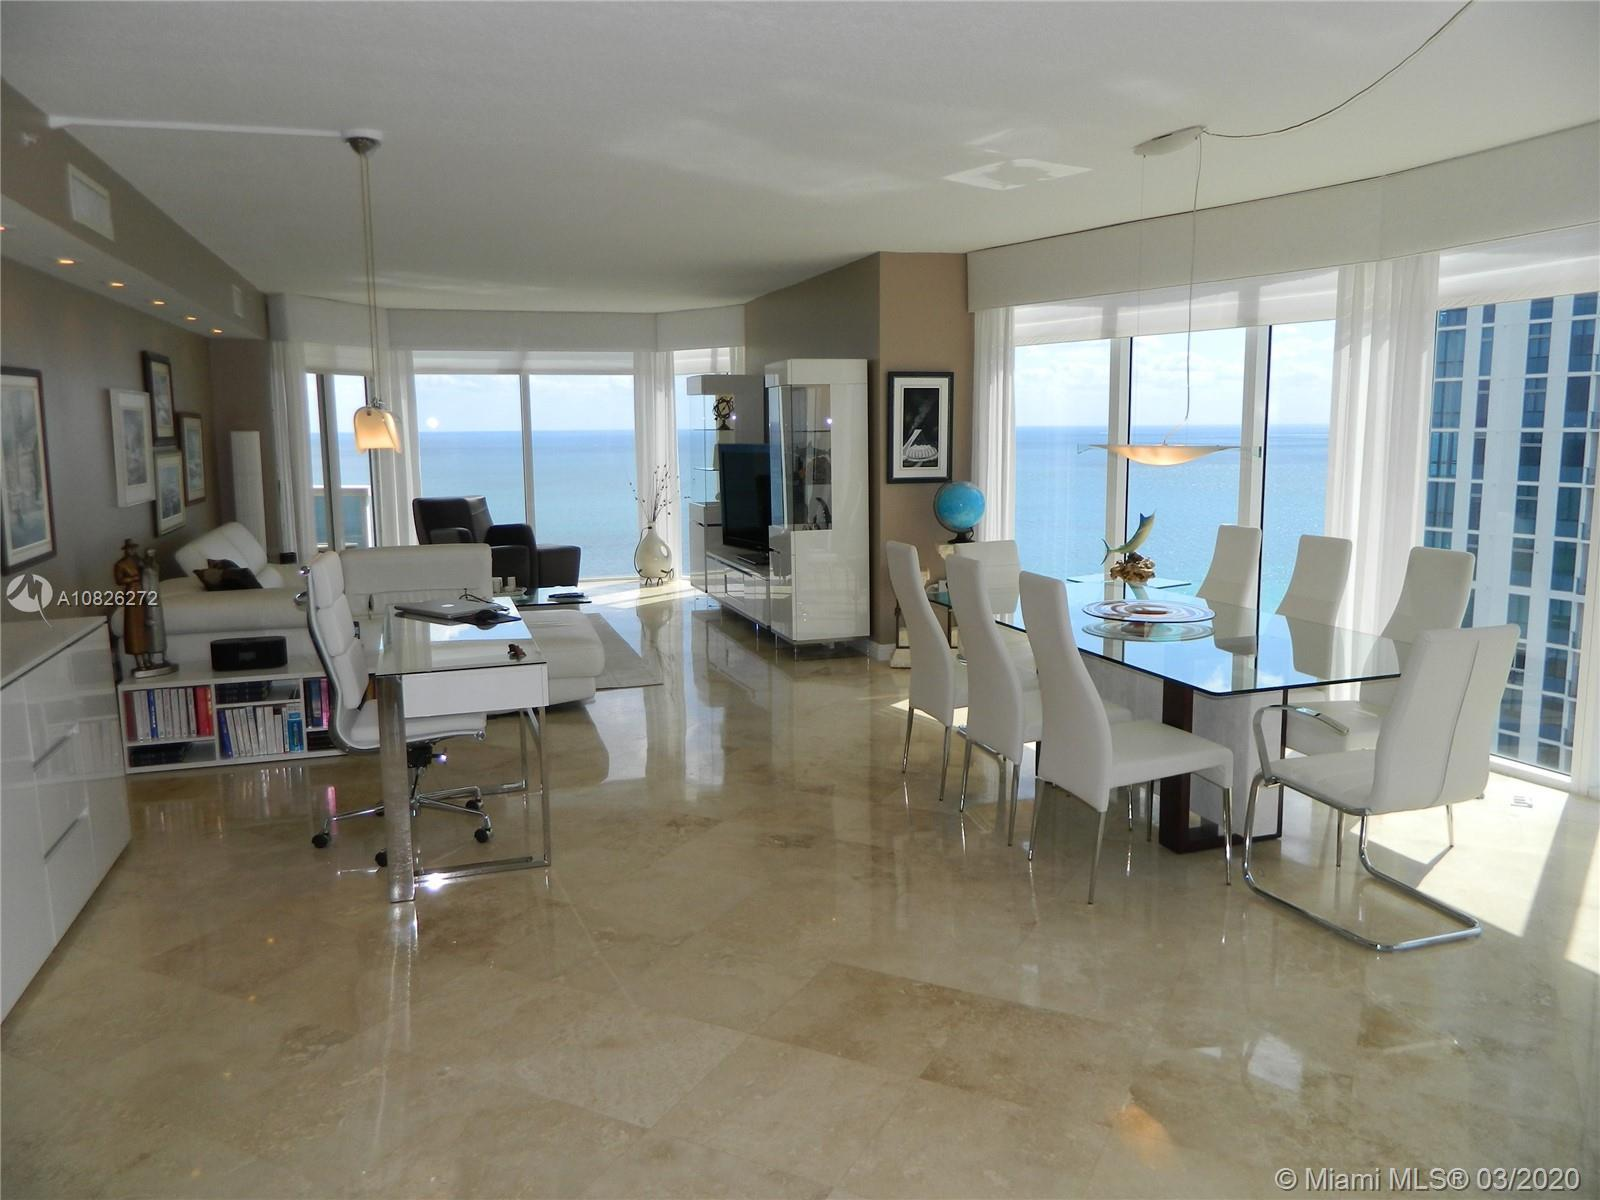 Sunrise to sunset vistas. 360 degree view. Great layout. Marble floors, electrical window treatments